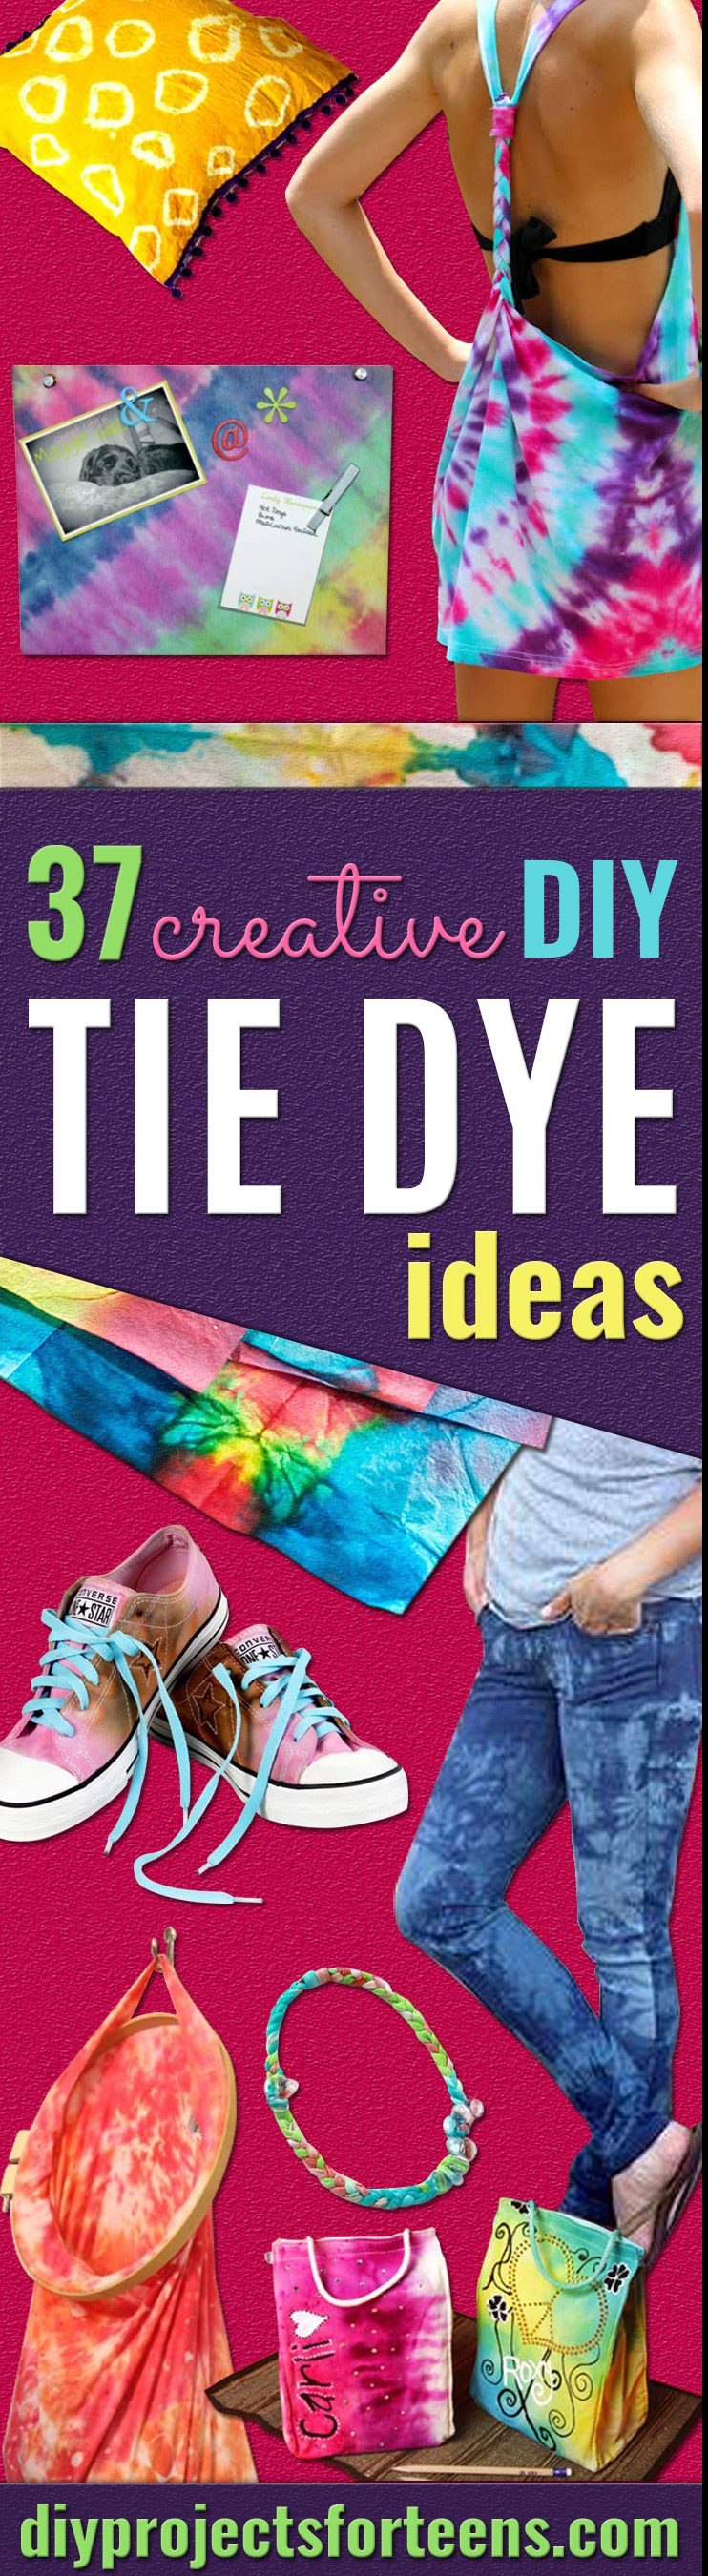 DIY Tie Dye Projects and Crafts - Cobalt and White Tie Dyed Skirt - Cool Tie Dye Ideas for Shirts, Socks, Paint, Sheets, Sharpie, Food and Recipes, Bags, Tshirt and Shoes - Fun Projects and Gifts for Adults, Teens and Teenagers http://stage.diyprojectsforteens.com/diy-tie-dye-ideas